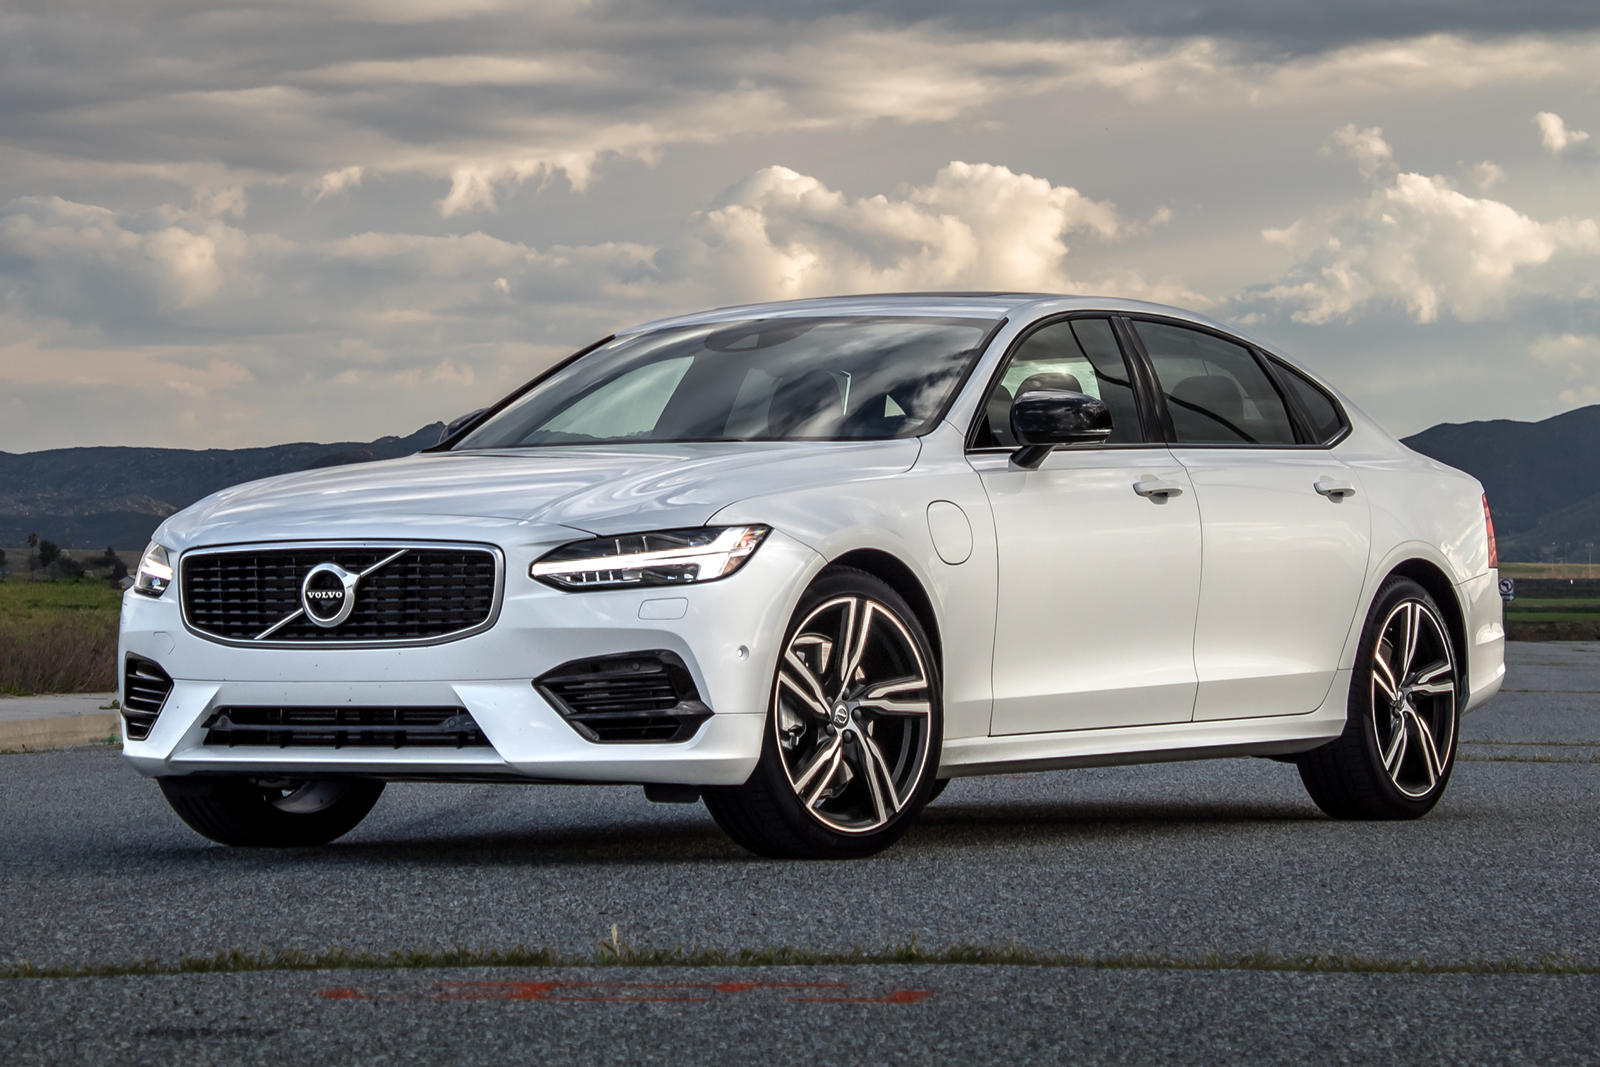 2020 Volvo S90 Hybrid Review Trims Specs Price New Interior Features Exterior Design And Specifications Carbuzz